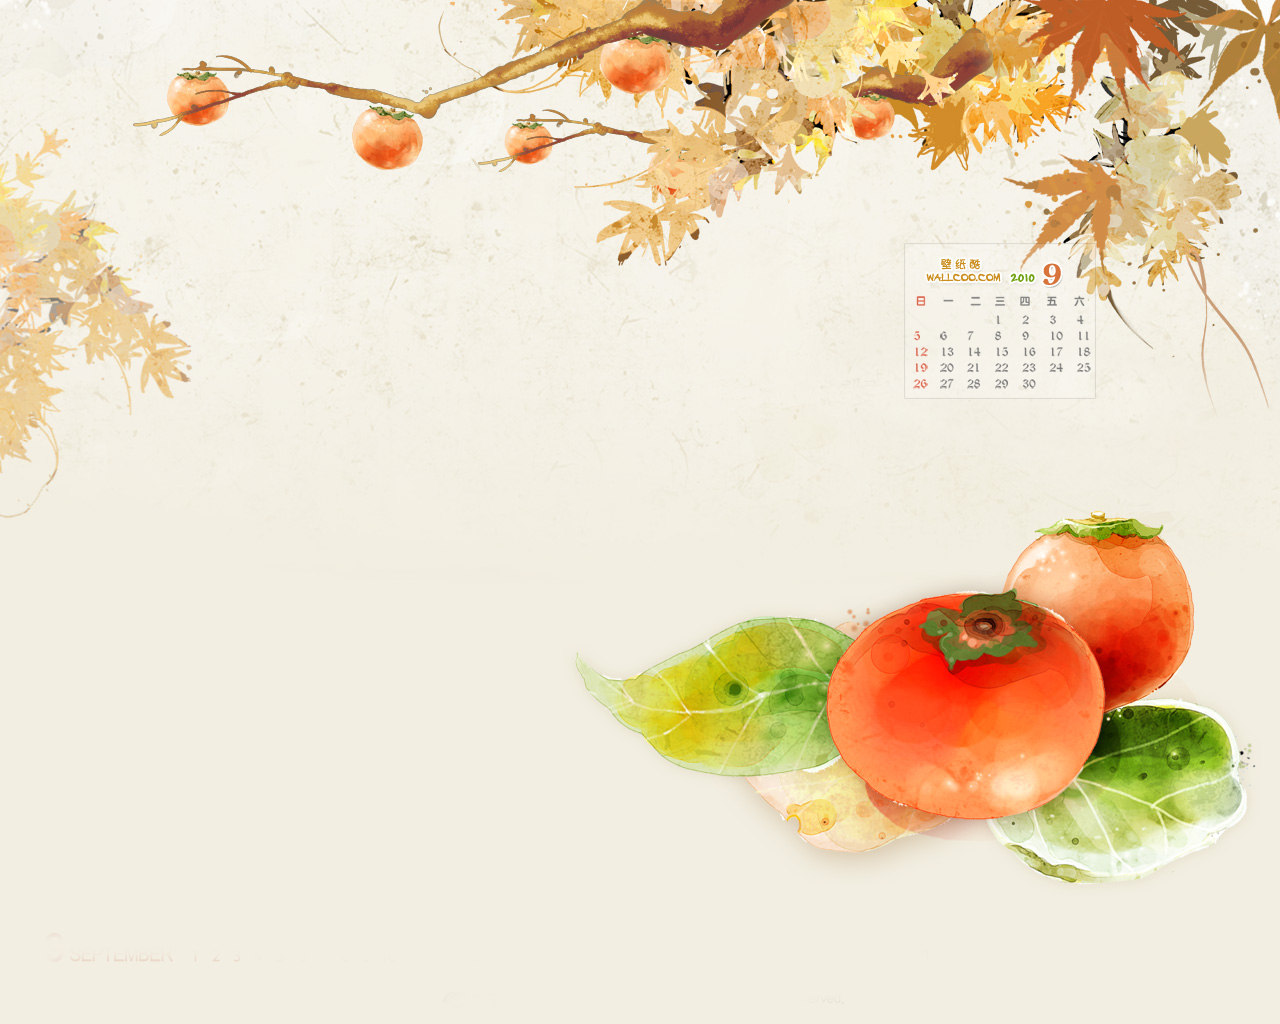 Wallpaper calendar years 13401